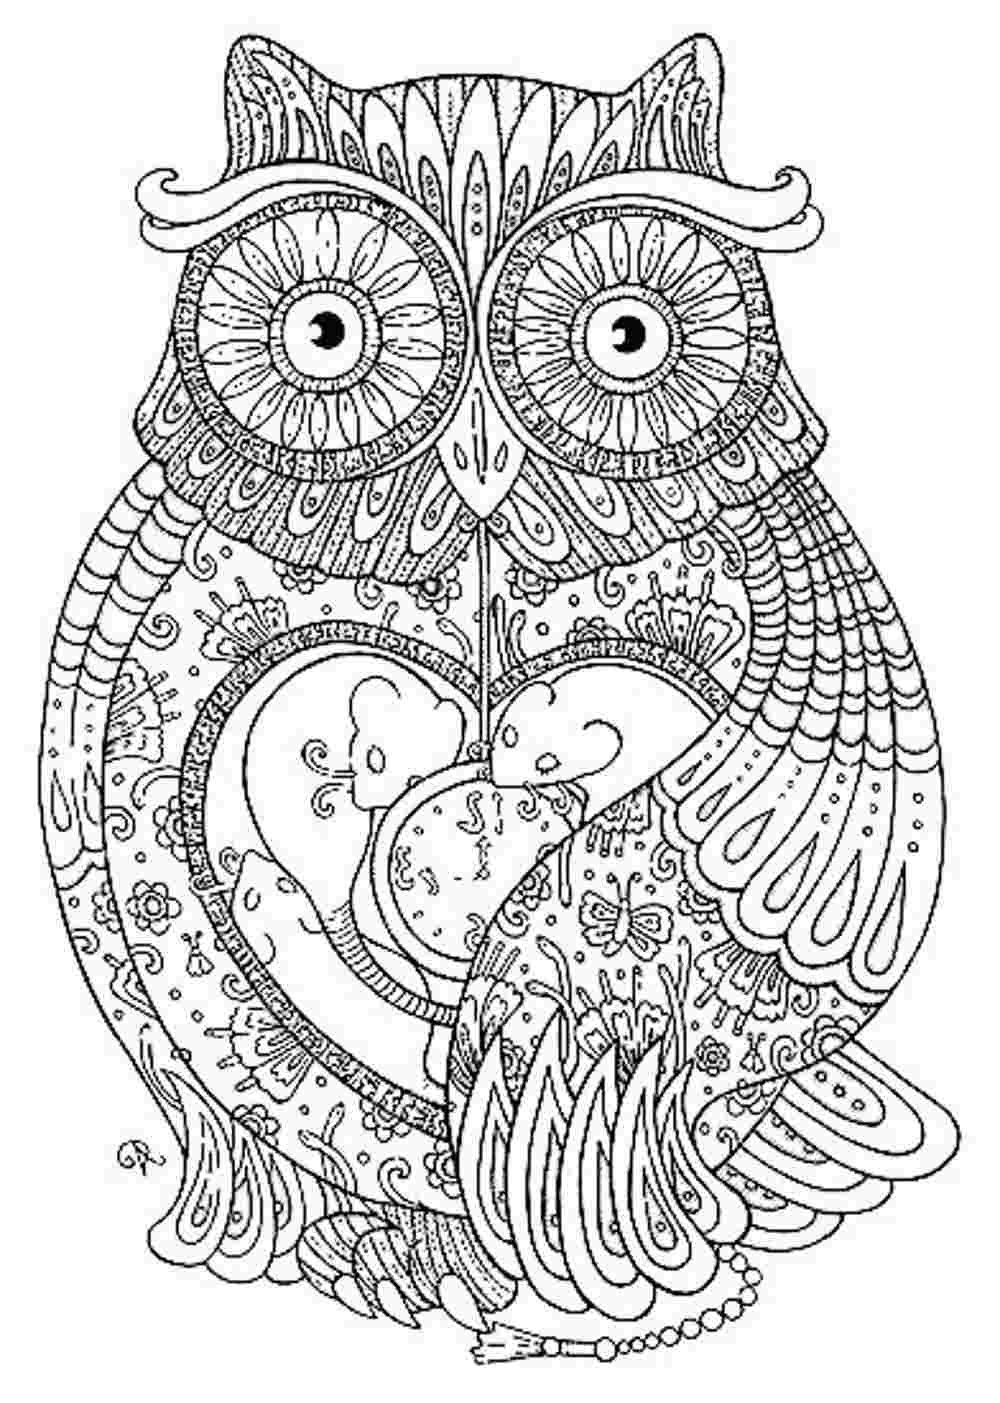 Free Coloring Sheets Adults  Free Printable Coloring Book Pages Best Adult Coloring